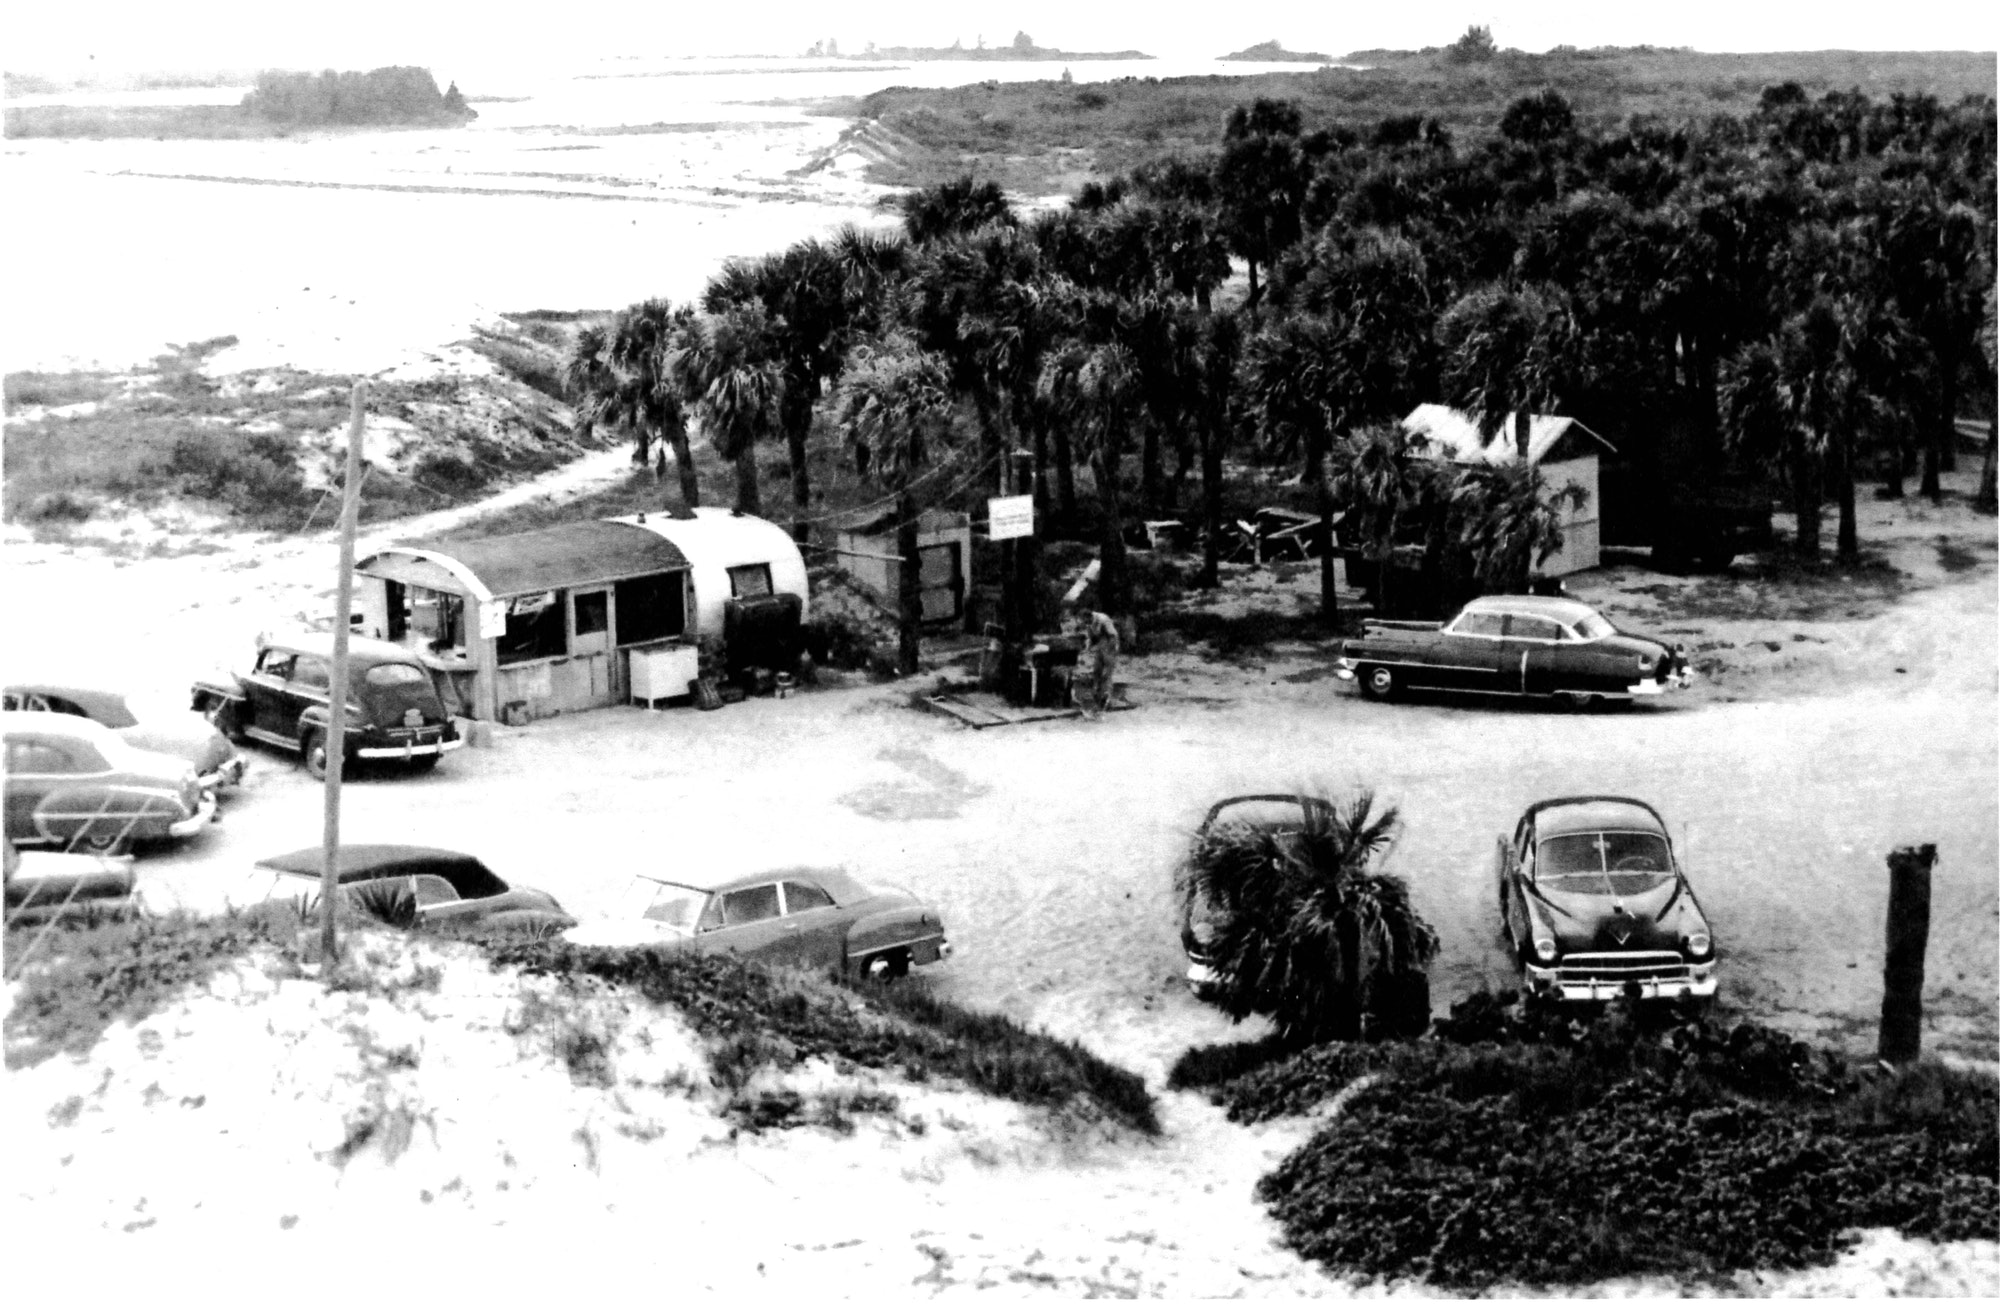 1950s style cars parked in a lot at the inlet showing a ramschackle fish camp in background